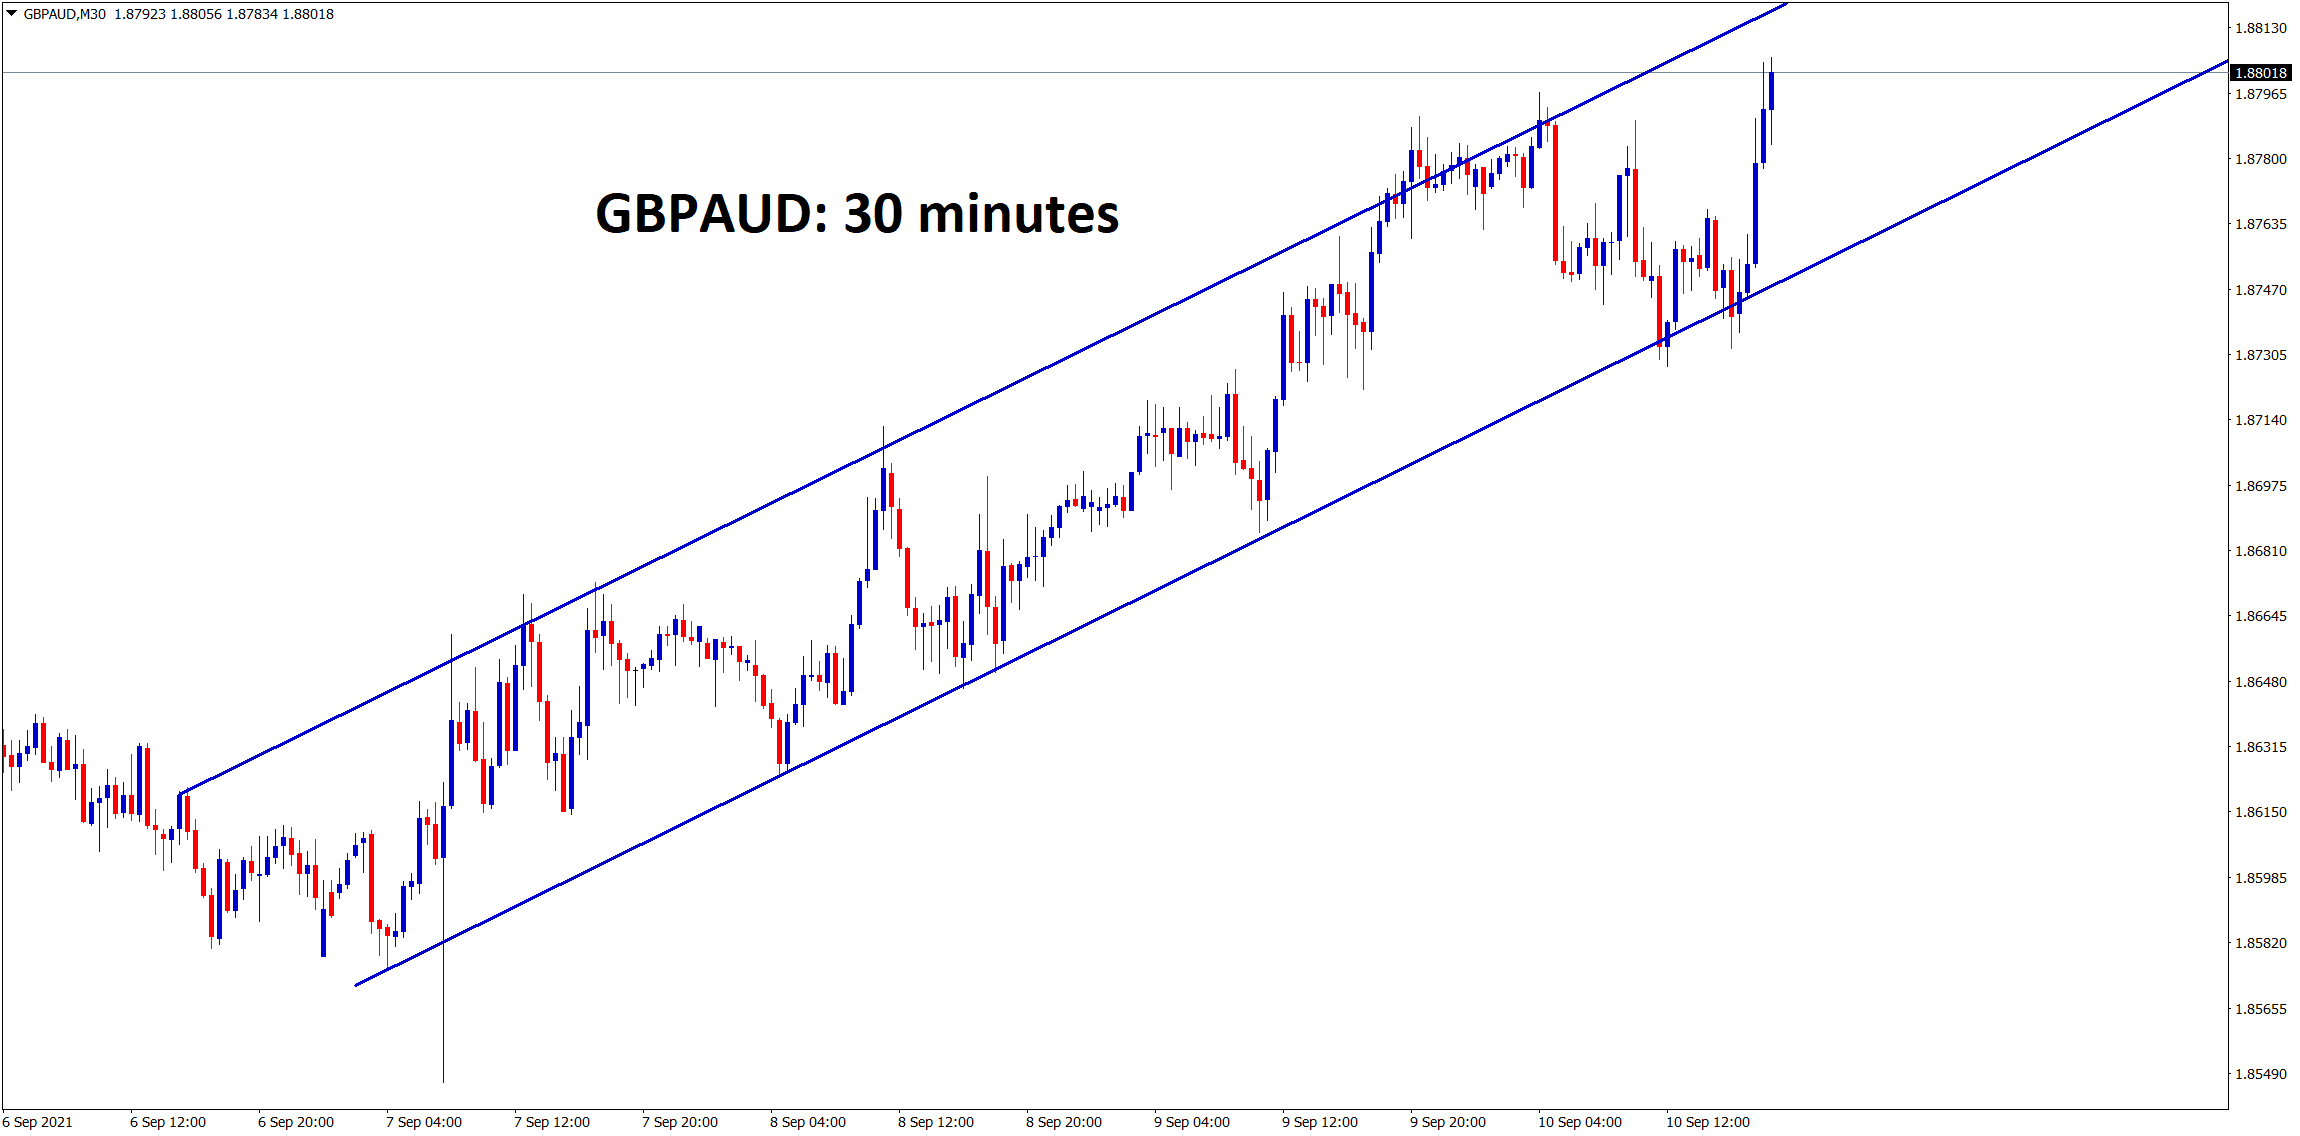 GBPAUD is moving in a clear ascending channel range in the 30 minutes timeframe